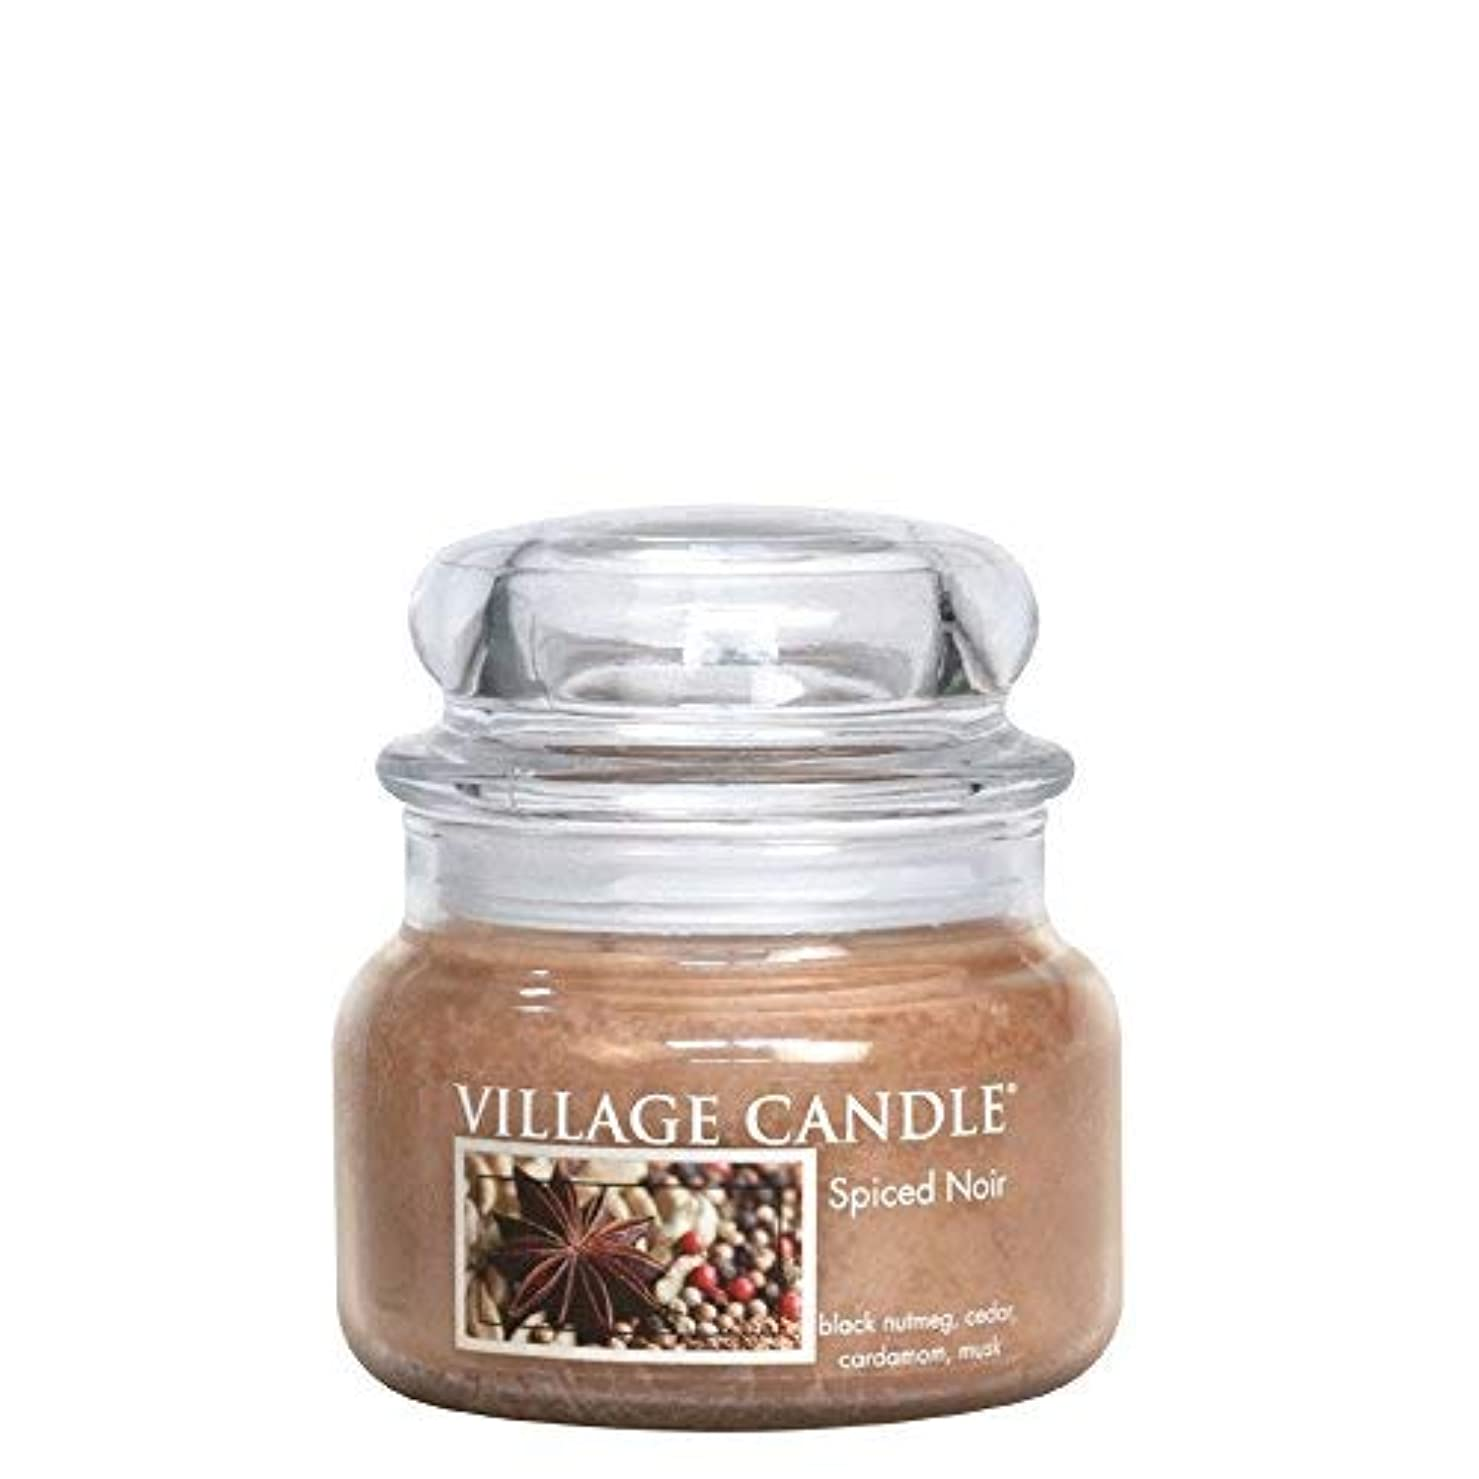 友だちいっぱいタヒチVillage Candle Spiced Noir 11 oz Glass Jar Scented Candle Small [並行輸入品]